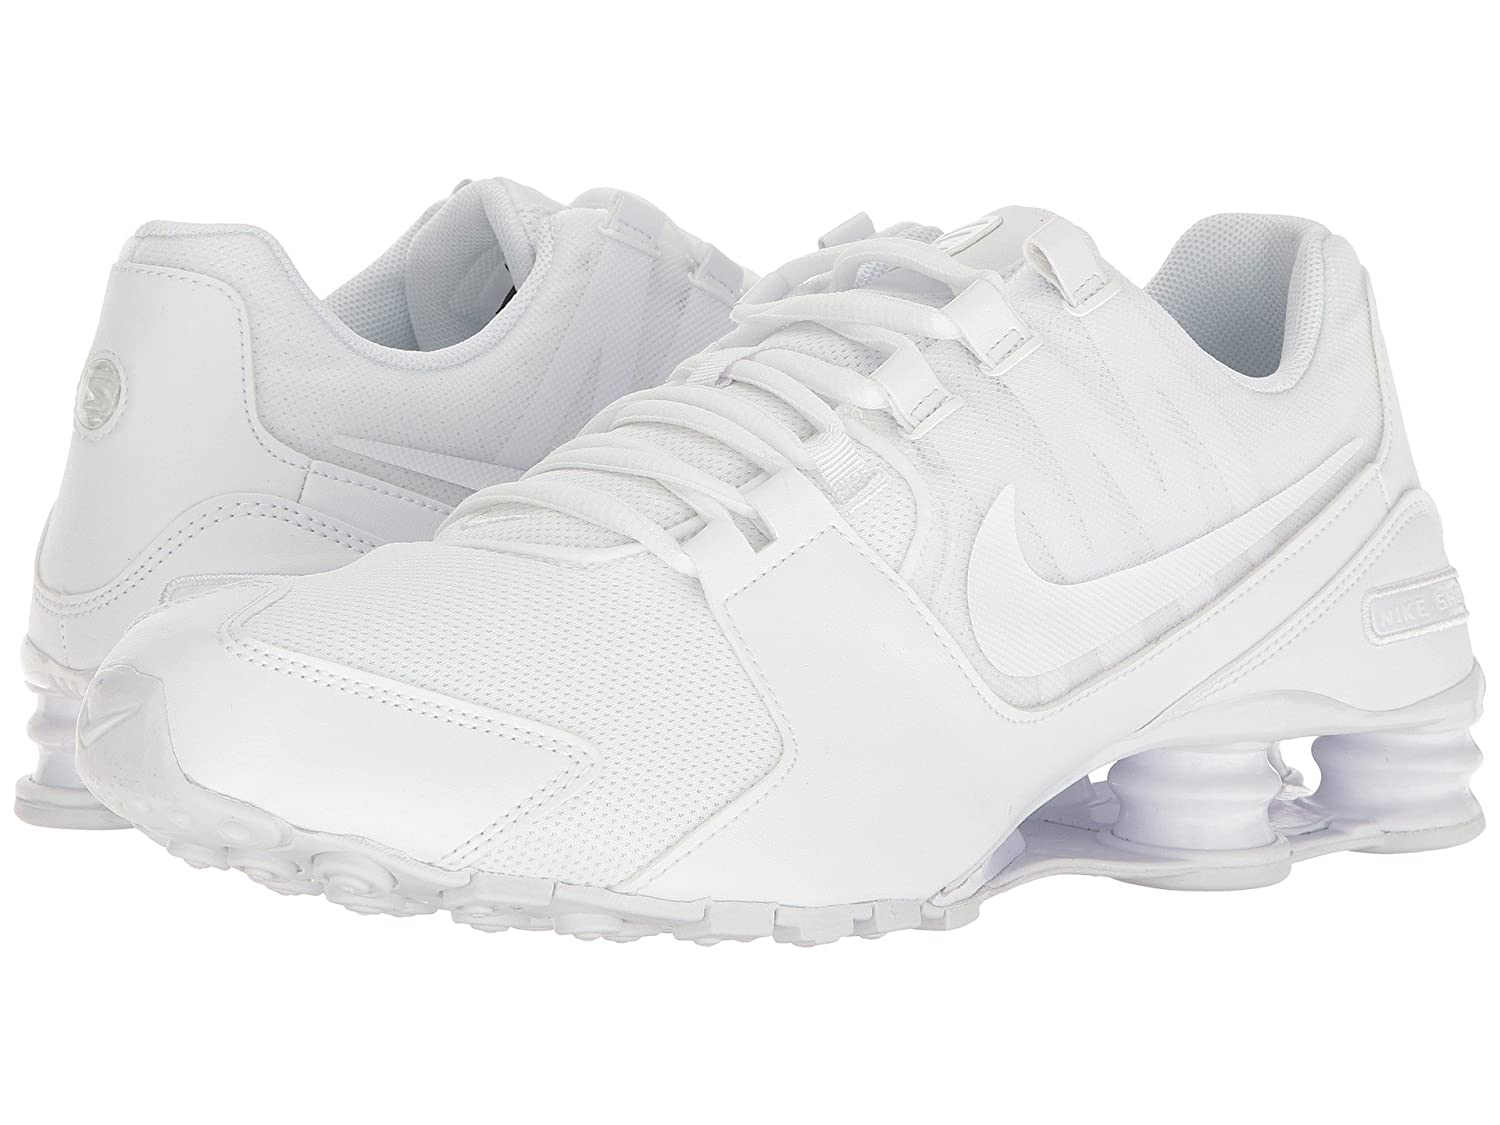 online retailer 20e11 8682e ... shop news nike men shox avenue running shoes white white white white  shop for the best